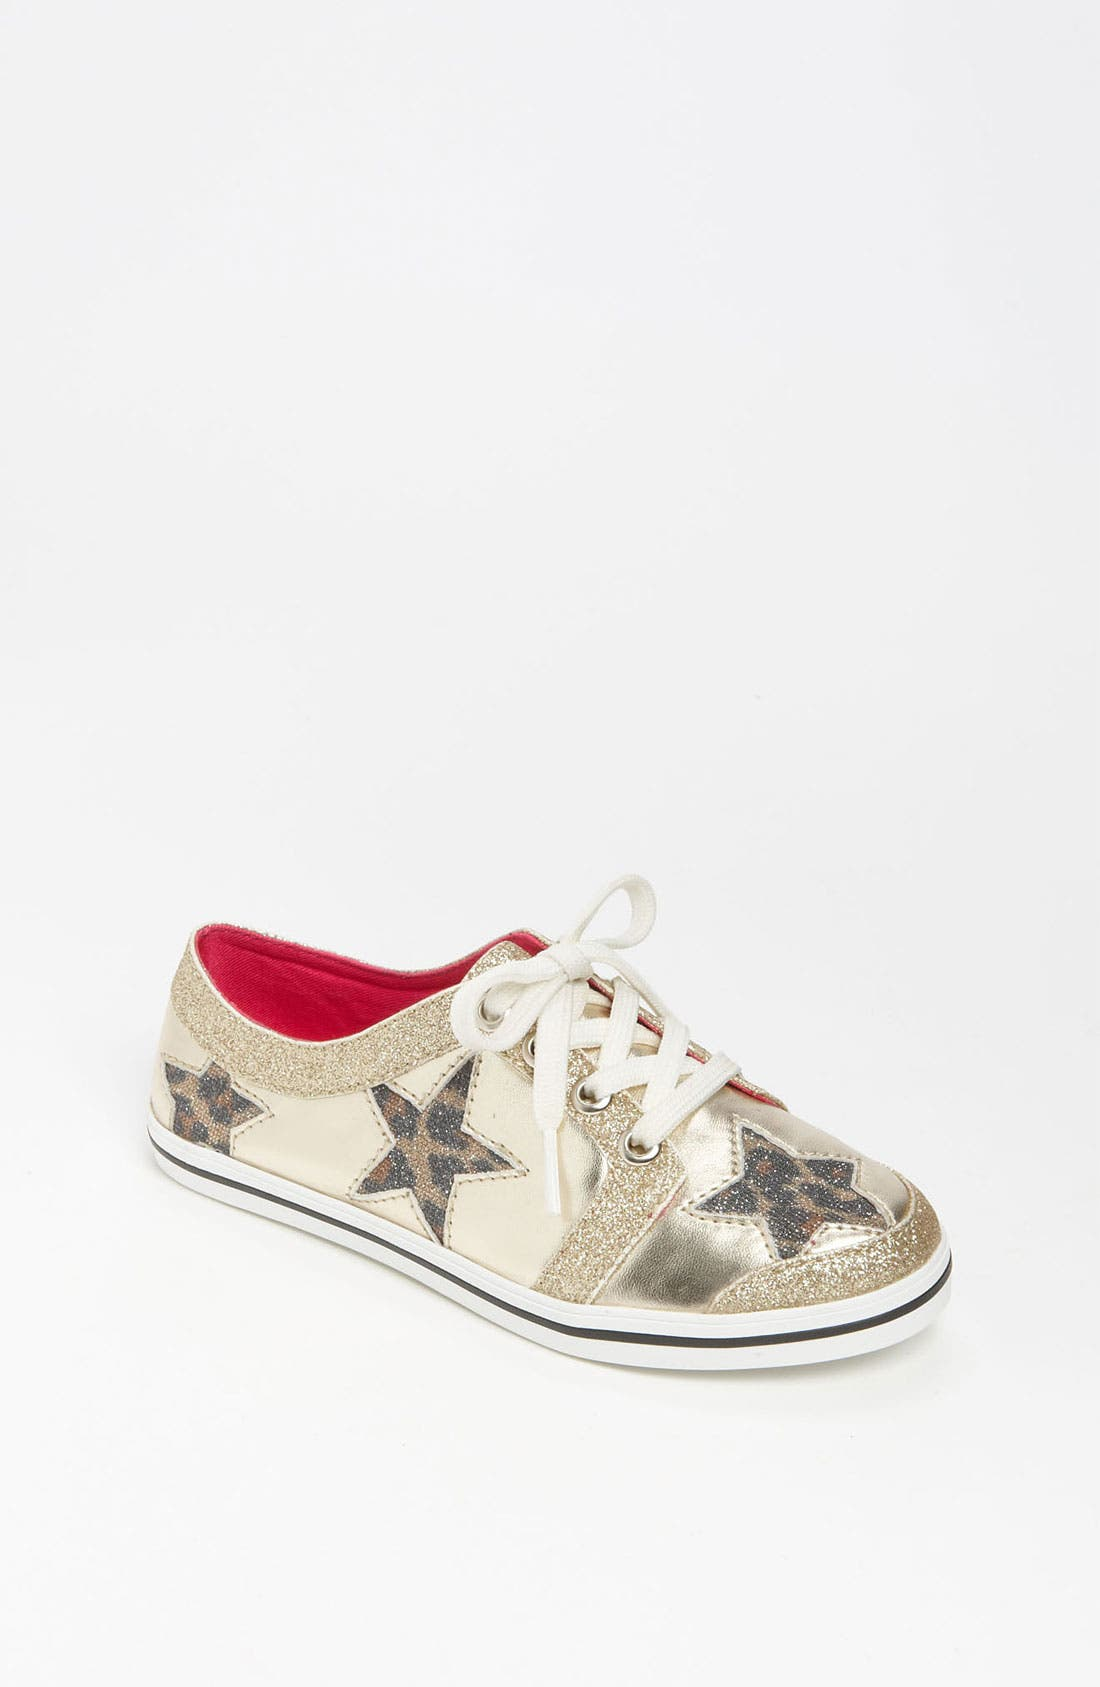 Alternate Image 1 Selected - Juicy Couture 'Star' Sneaker (Toddler, Little Kid & Big Kid)